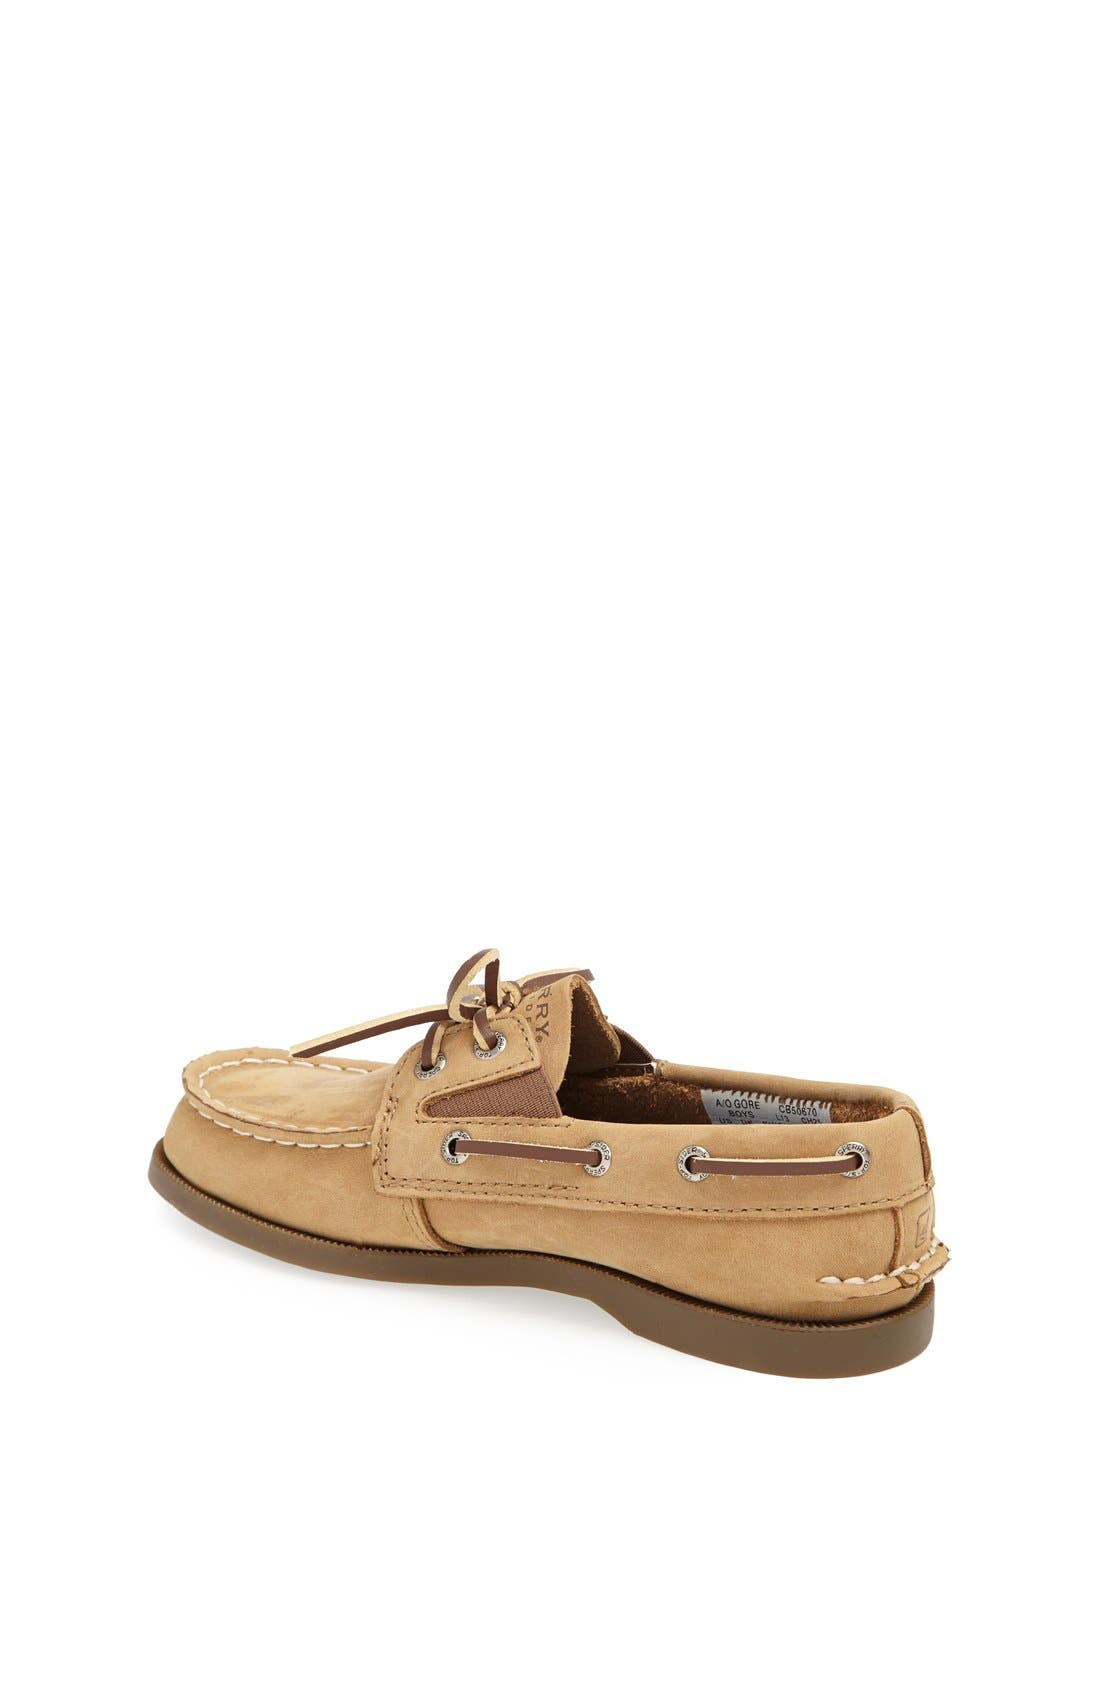 Alternate Image 2  - Sperry Kids 'Authentic Original' Boat Shoe (Walker, Toddler, Little Kid & Big Kid)